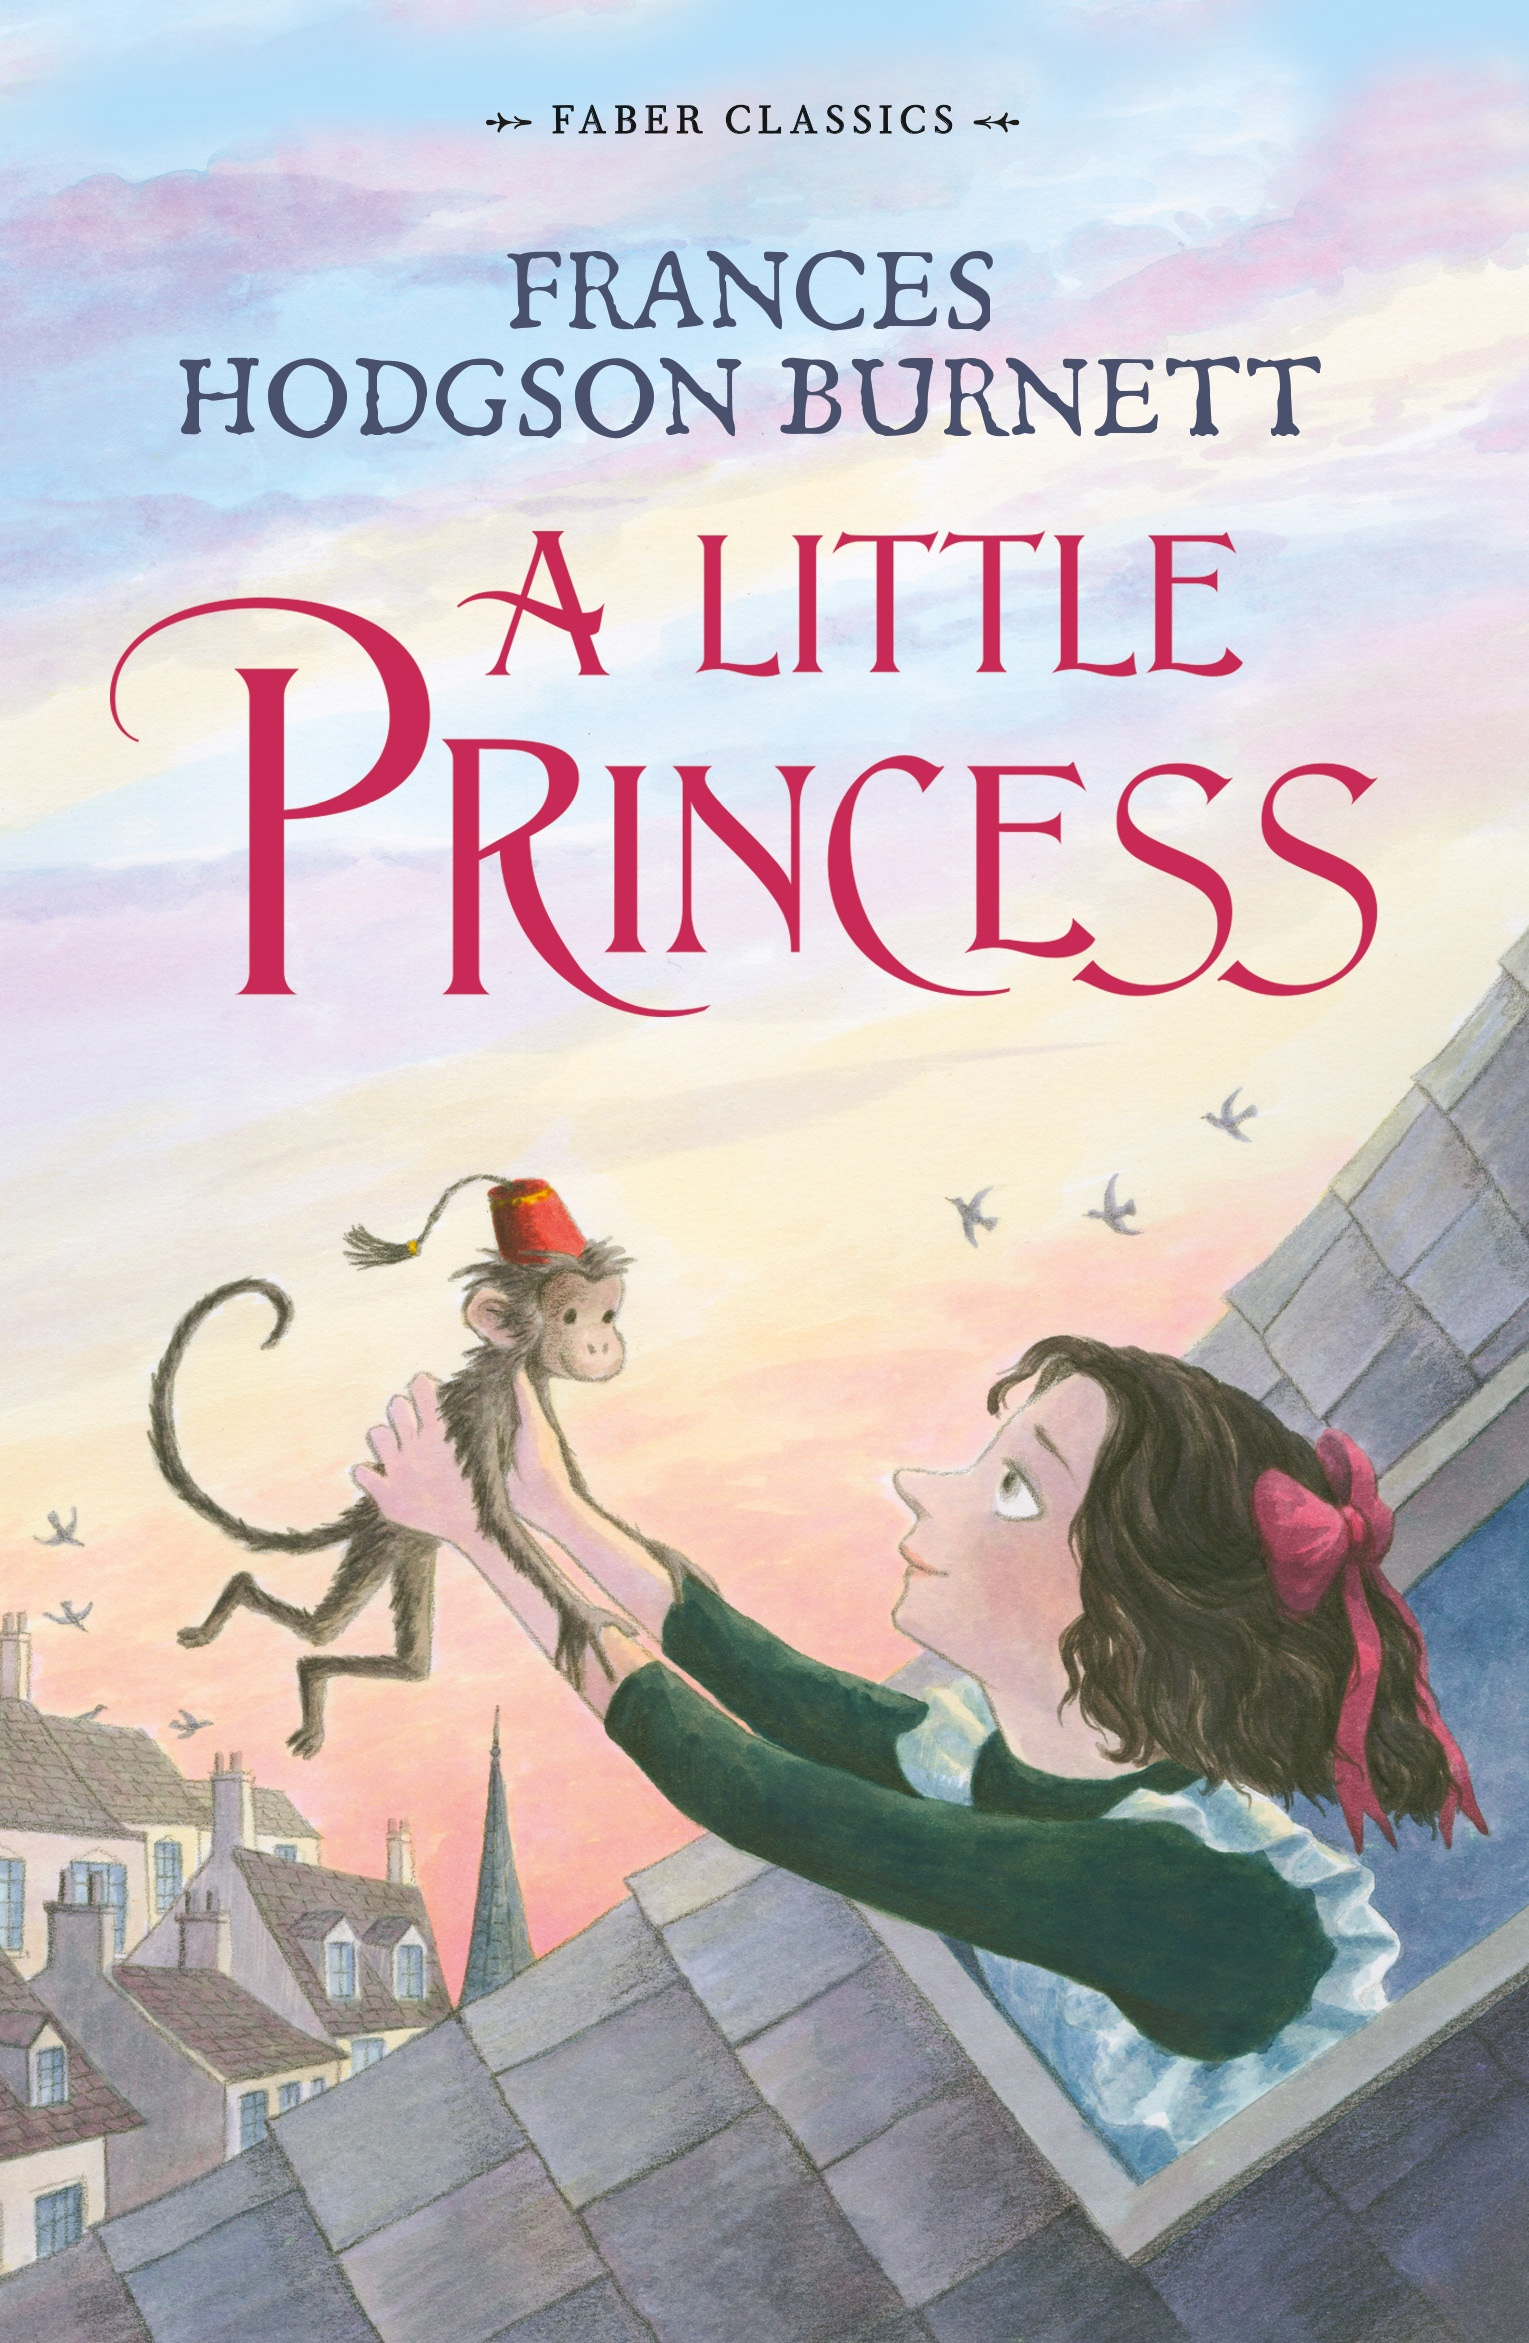 a little princess by frances hodgson A little princess by frances hodgson burnett searchable etext discuss with  other readers.